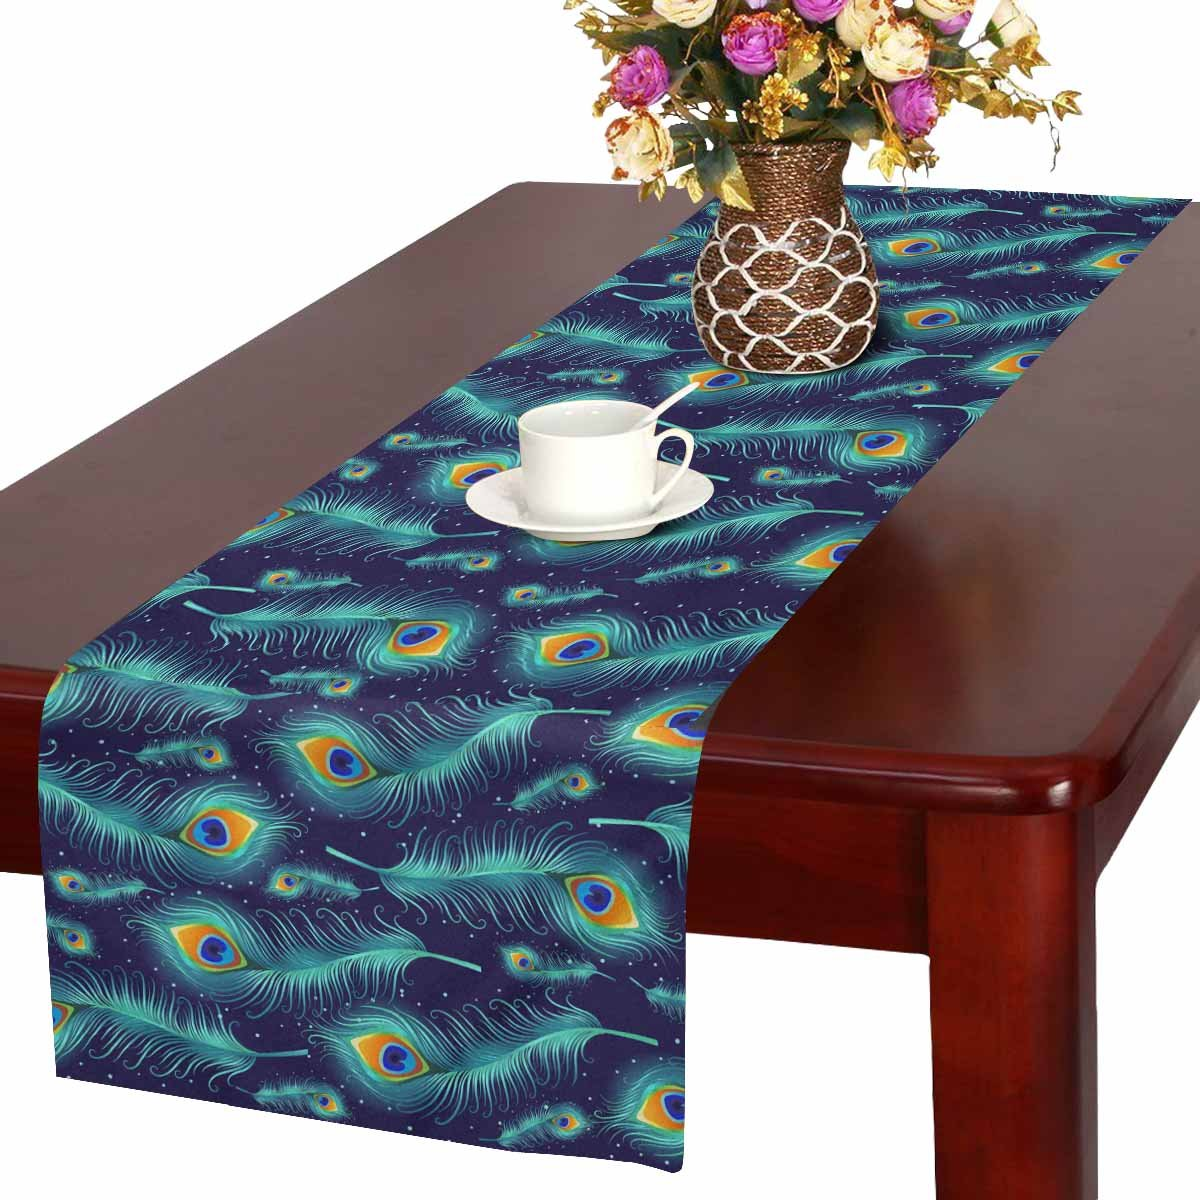 Quilted Table Runner 19.5x47.5 Moonlight Peacock 960